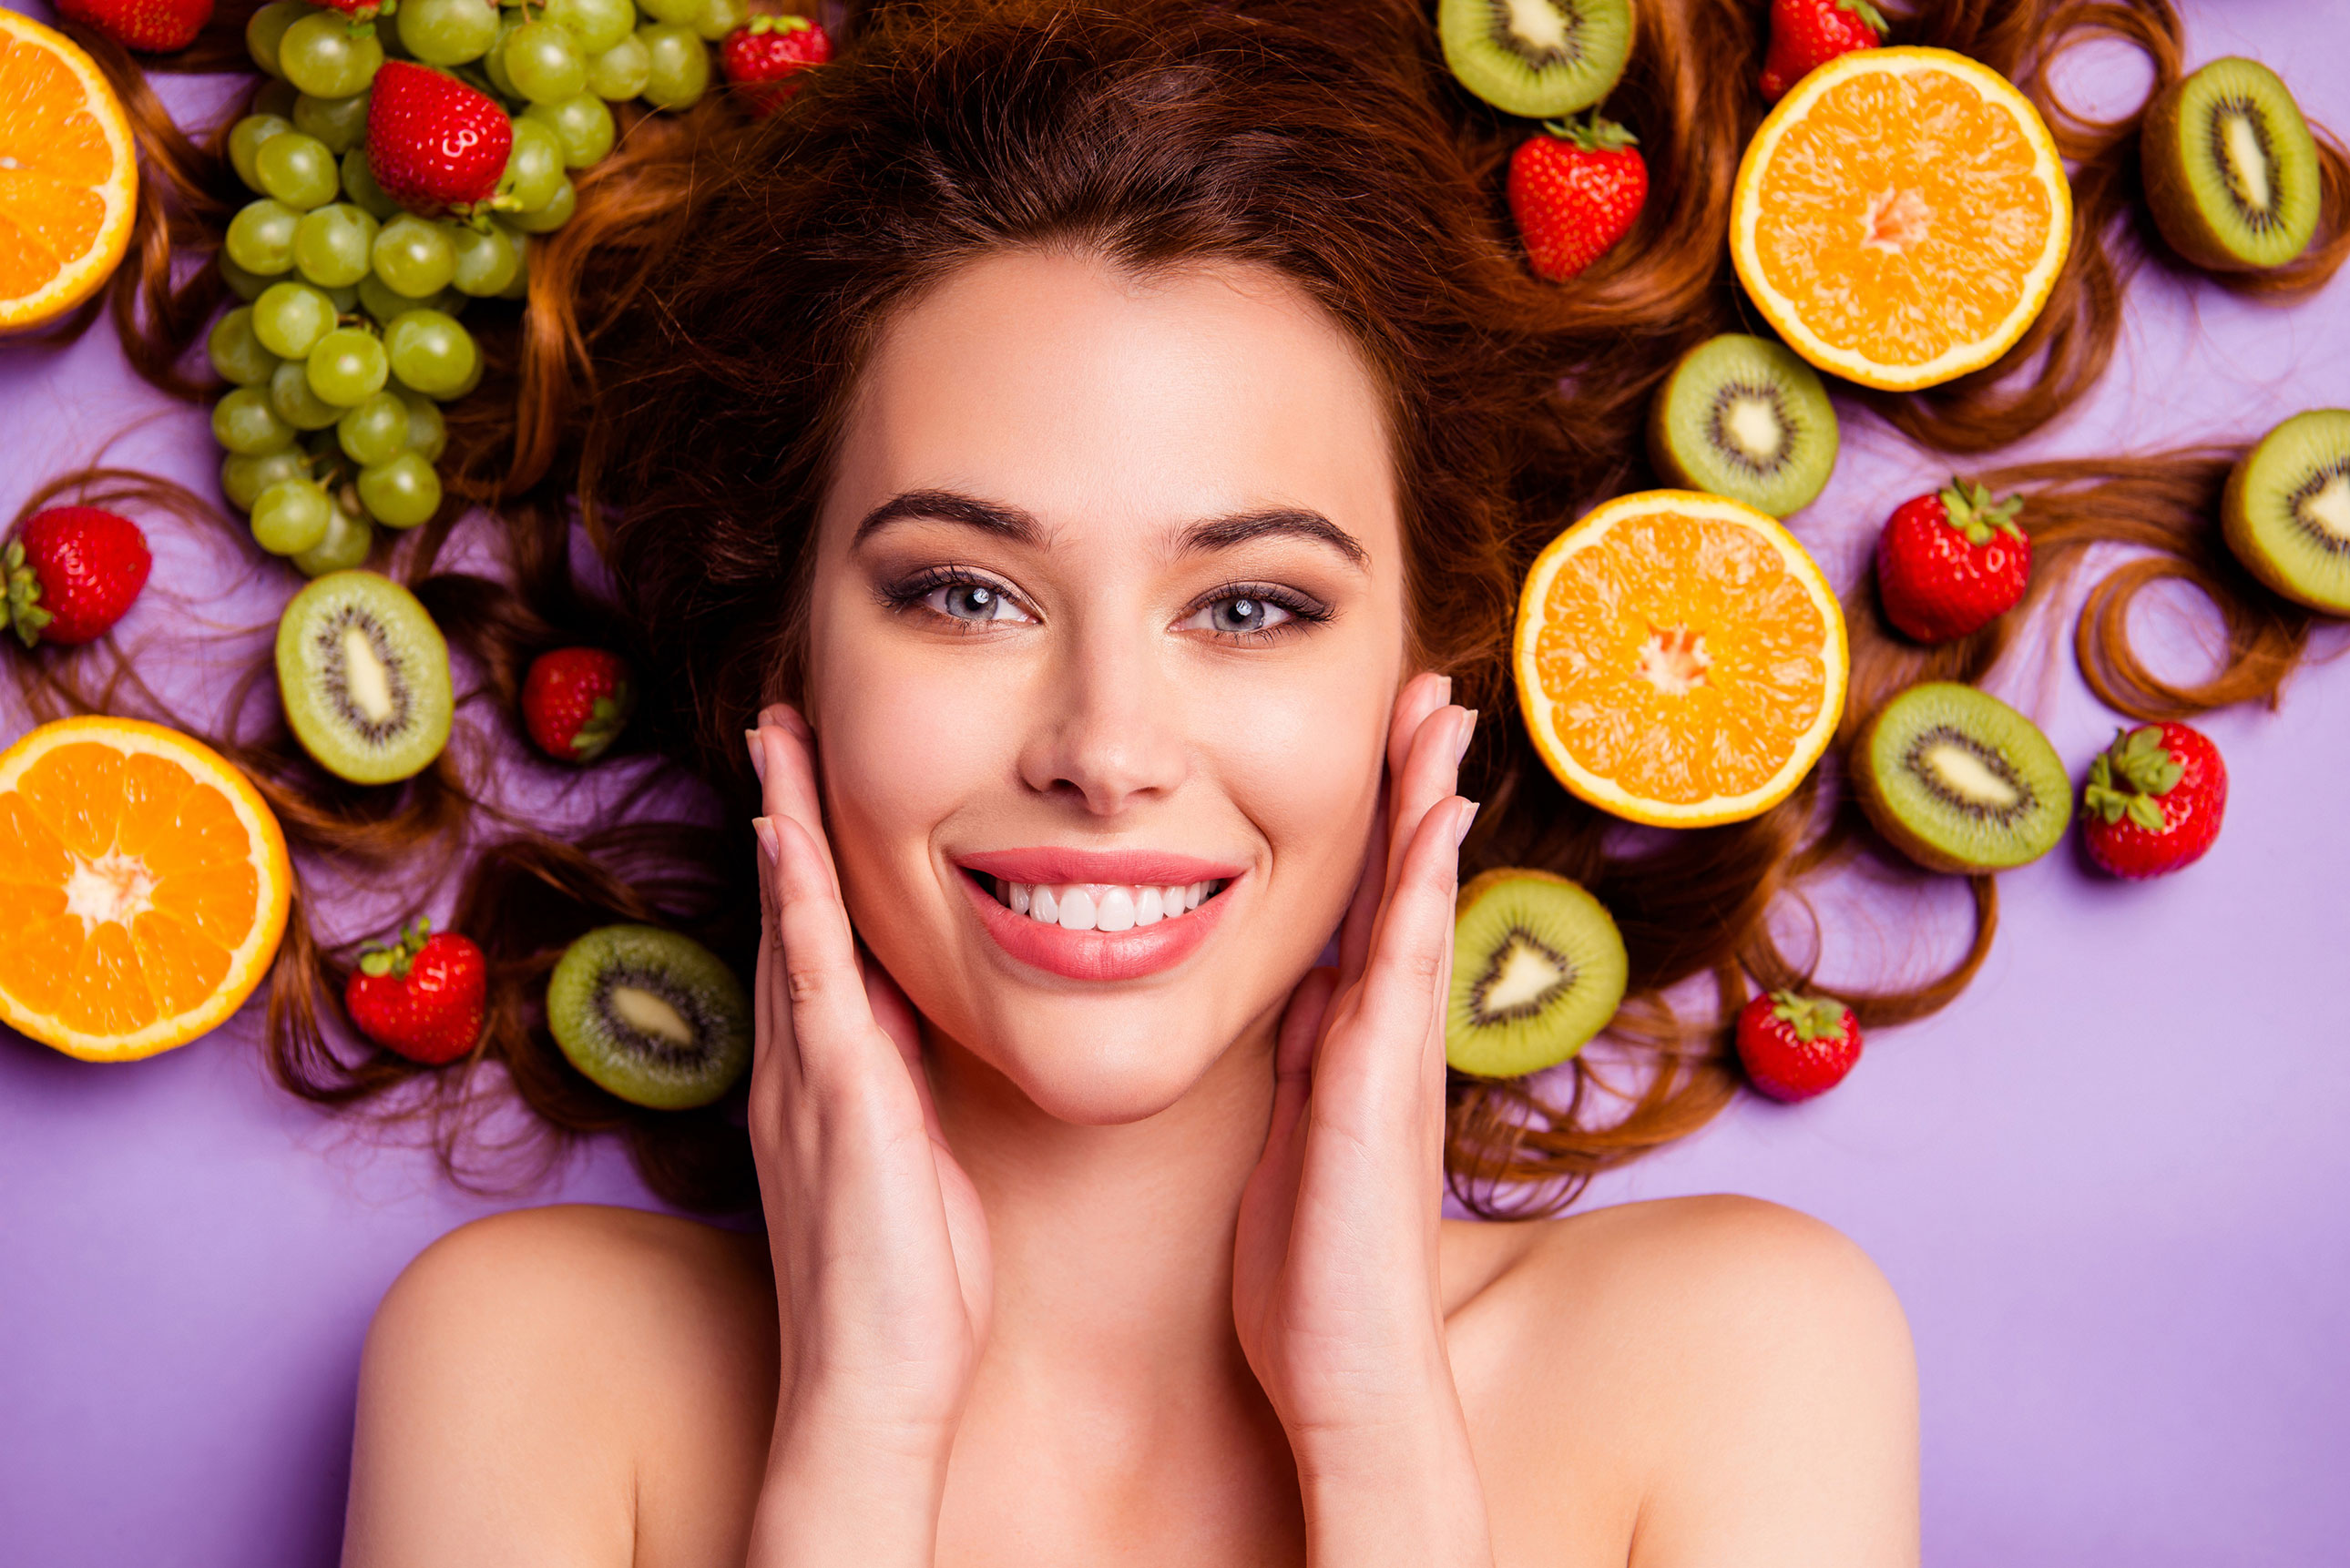 Woman eating healthy fruits and vegetables as part of her healthy skin diet.